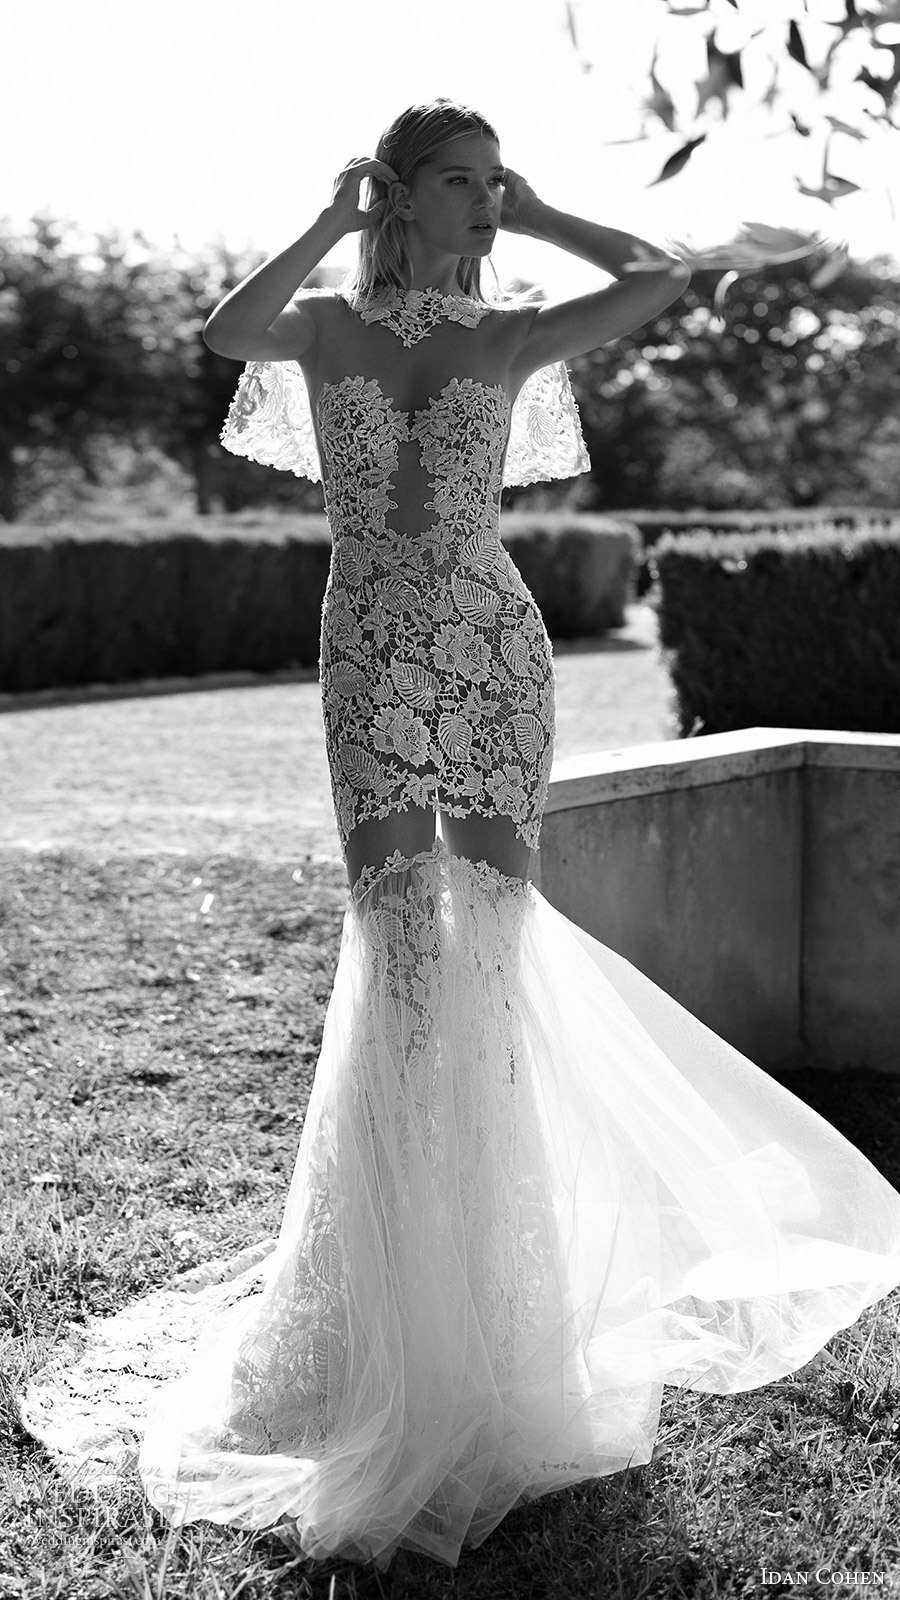 idan cohen bridal 2017 illusion long sleeves sweetheart neckline mermaid lace wedding dress (luisa lia) fv short lace capelet long train